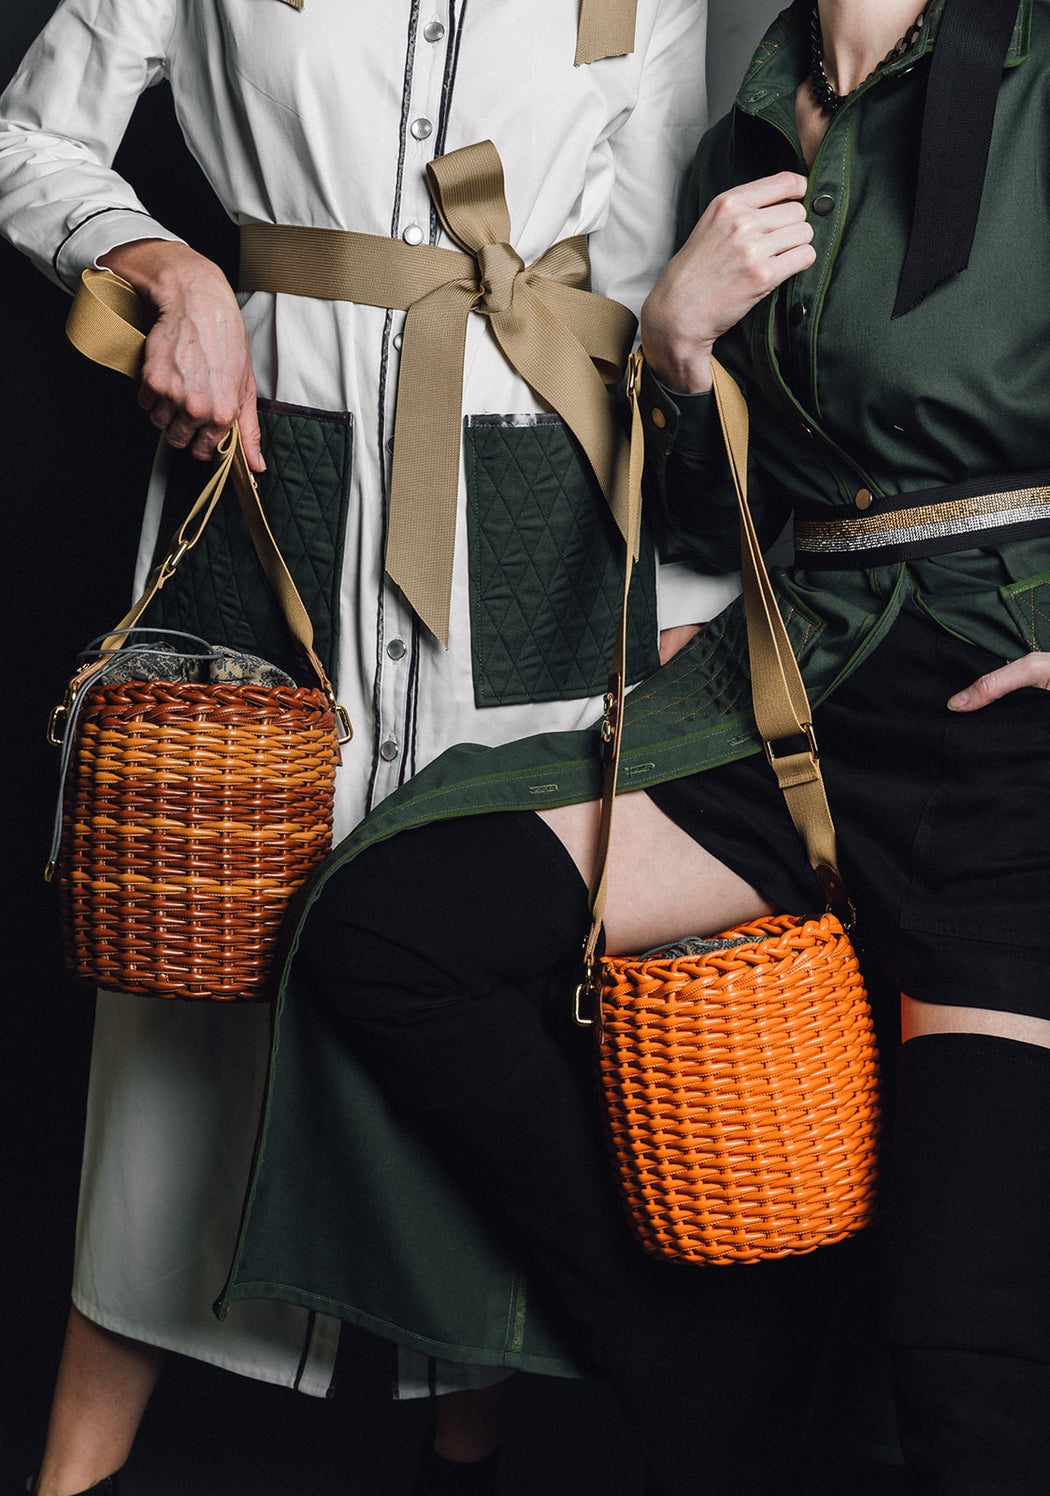 Two women carrying vegan leather basket handbags